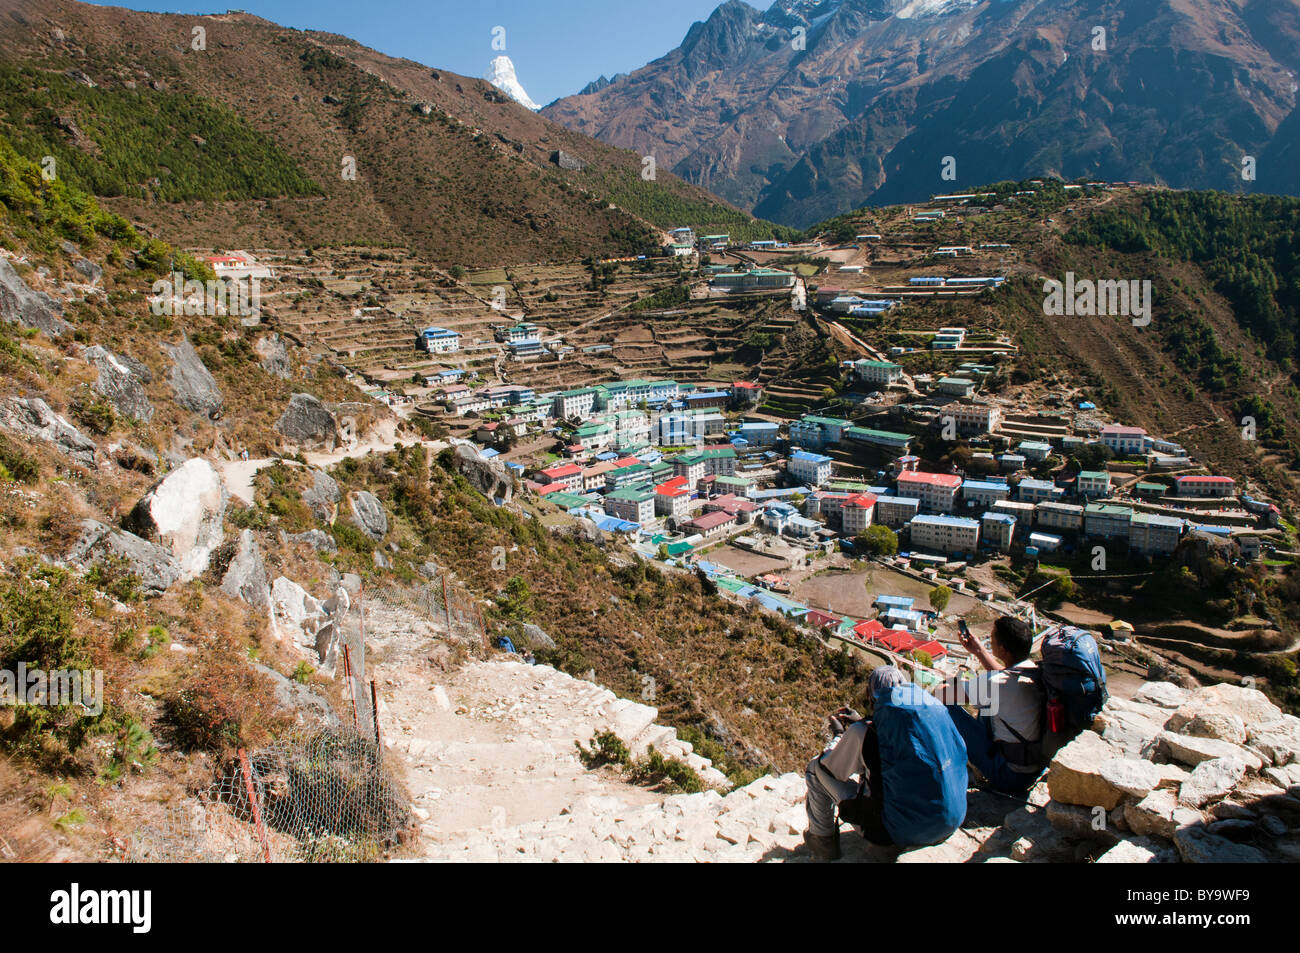 view of Namche Bazaar in the Everest Region of Nepal - Stock Image